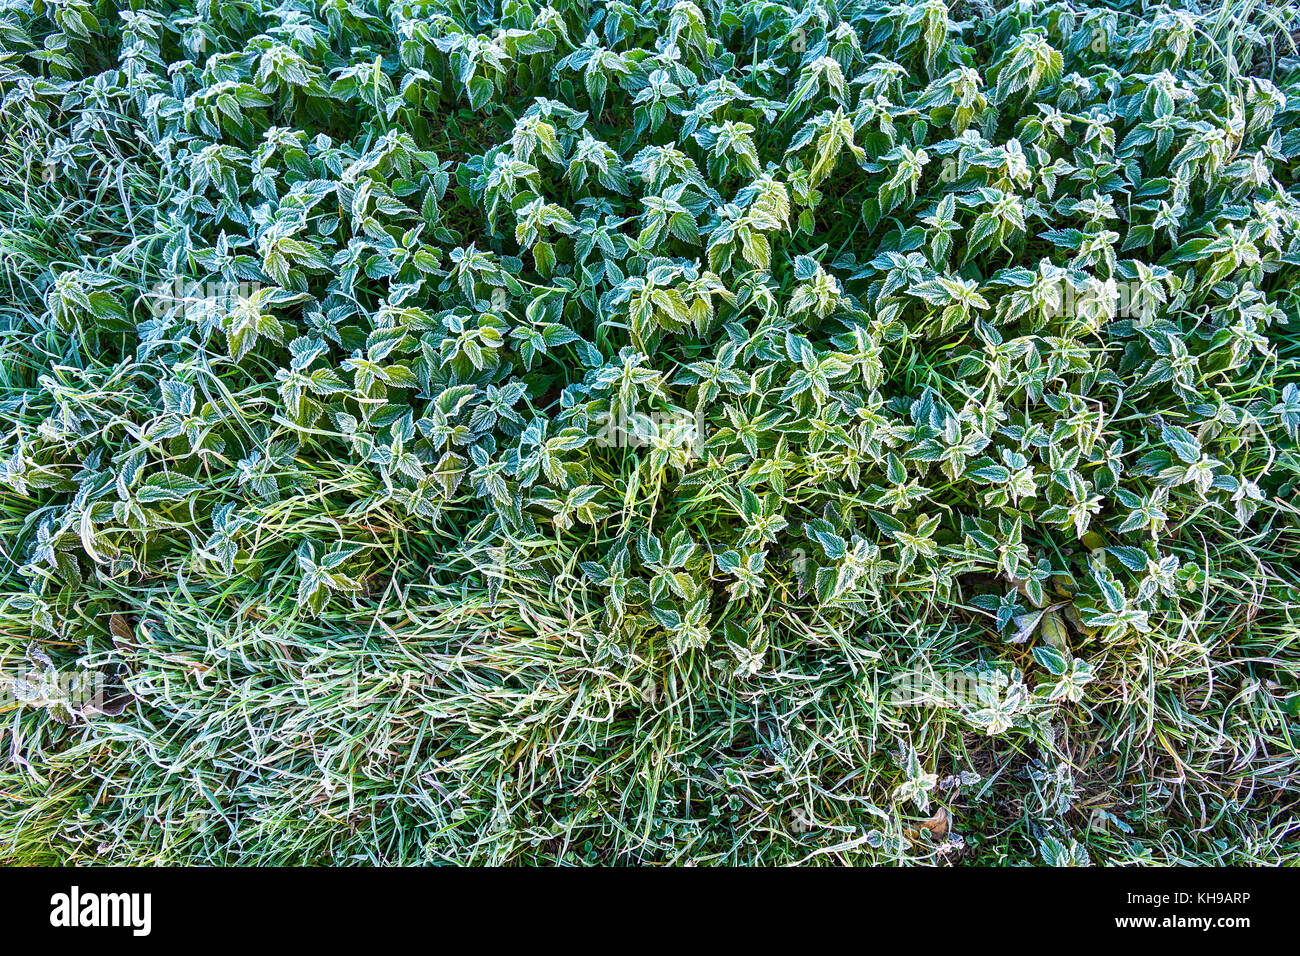 Frost on Stinging Nettle leaves. - Stock Image